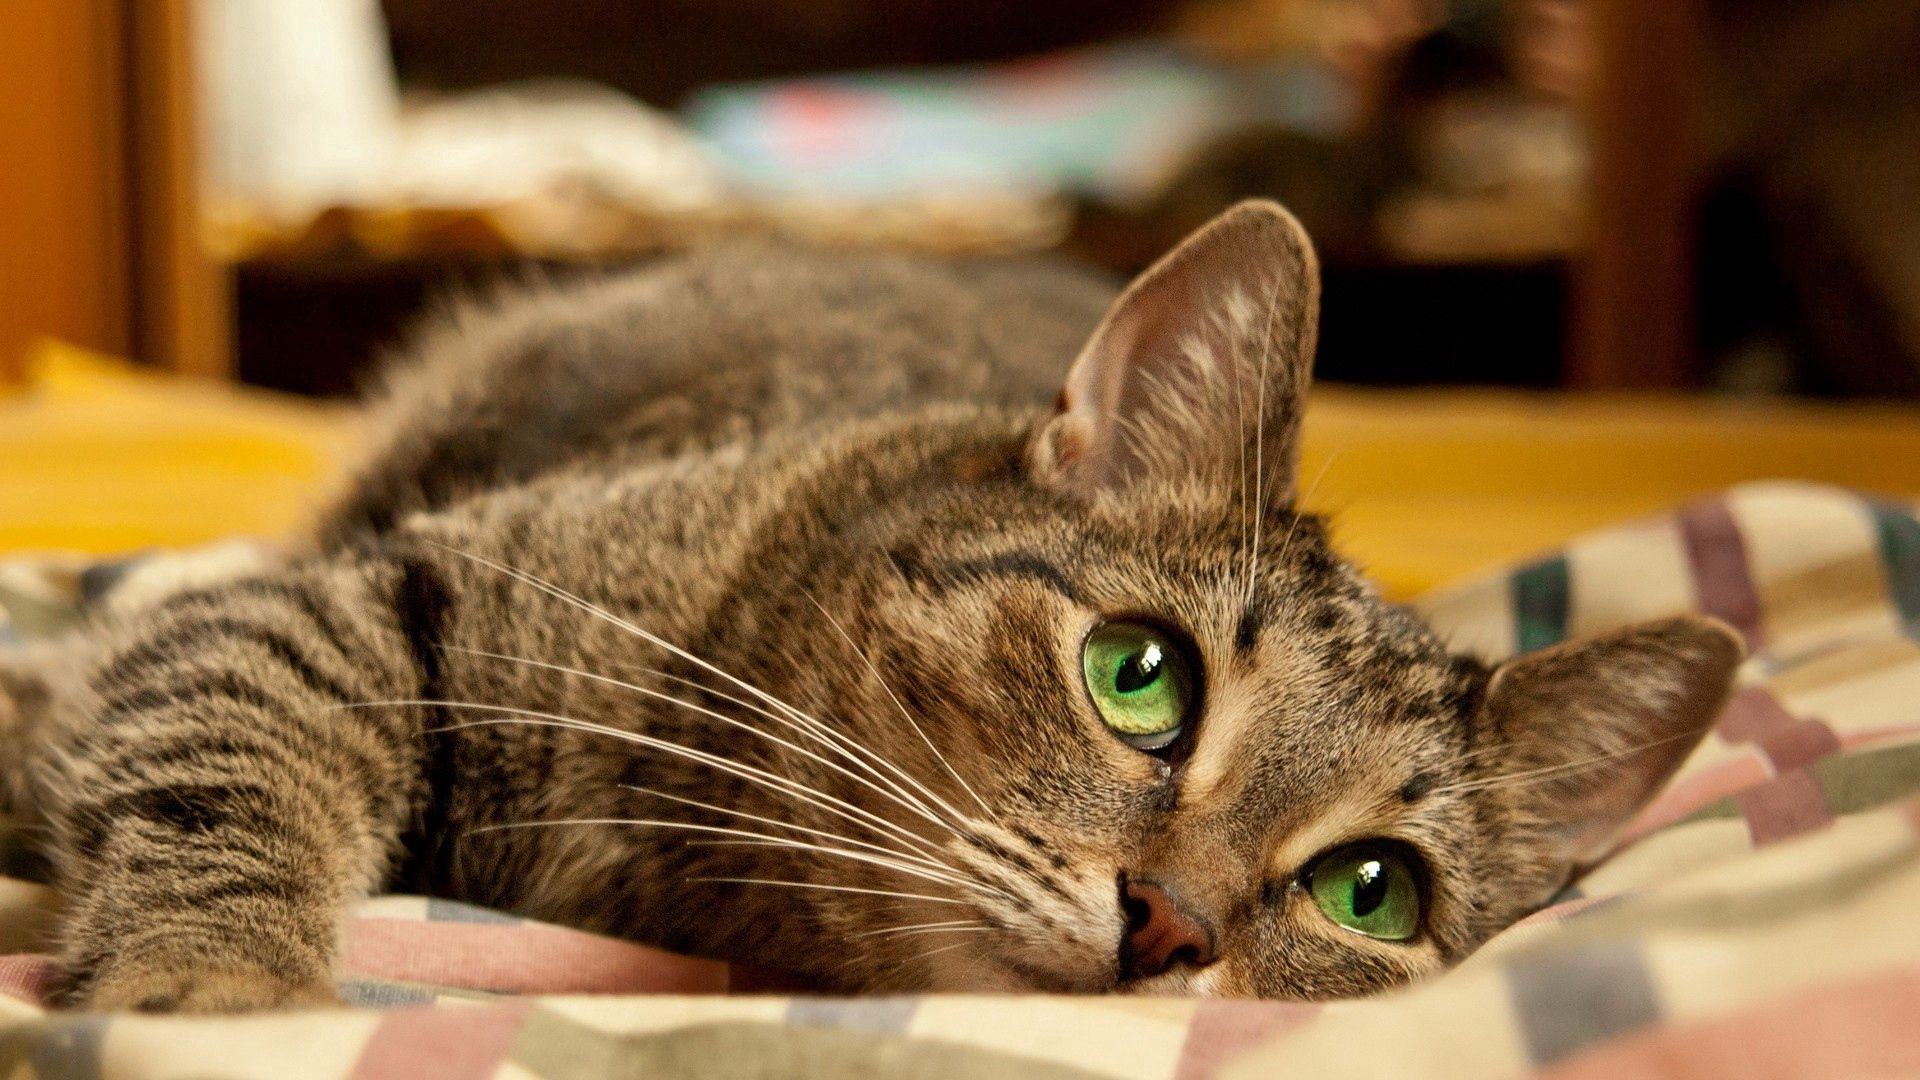 125178 download wallpaper Animals, Cat, Green Eyed, Green-Eyed, Muzzle, To Lie Down, Lie, Striped screensavers and pictures for free